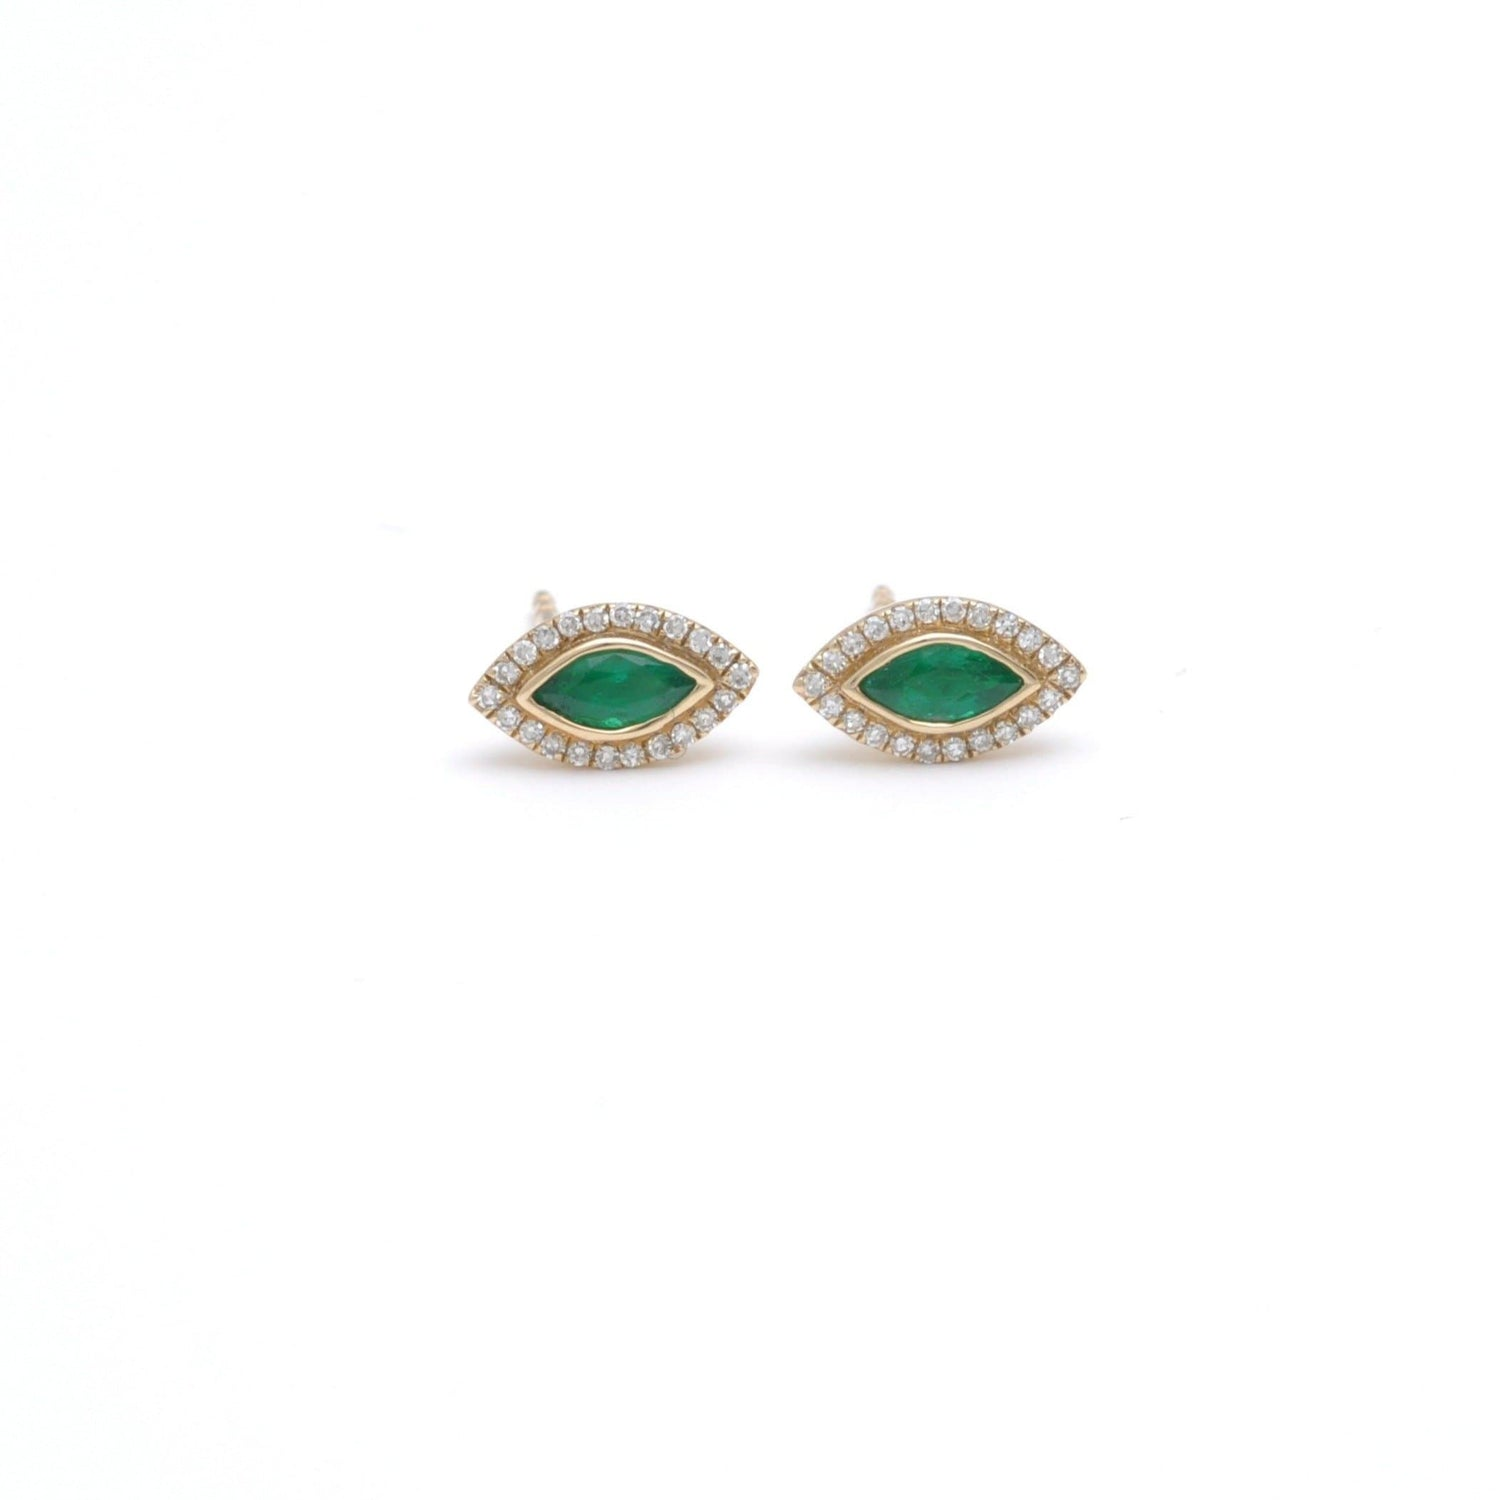 Marquise Emerald and Pave Diamond Stud Earrings